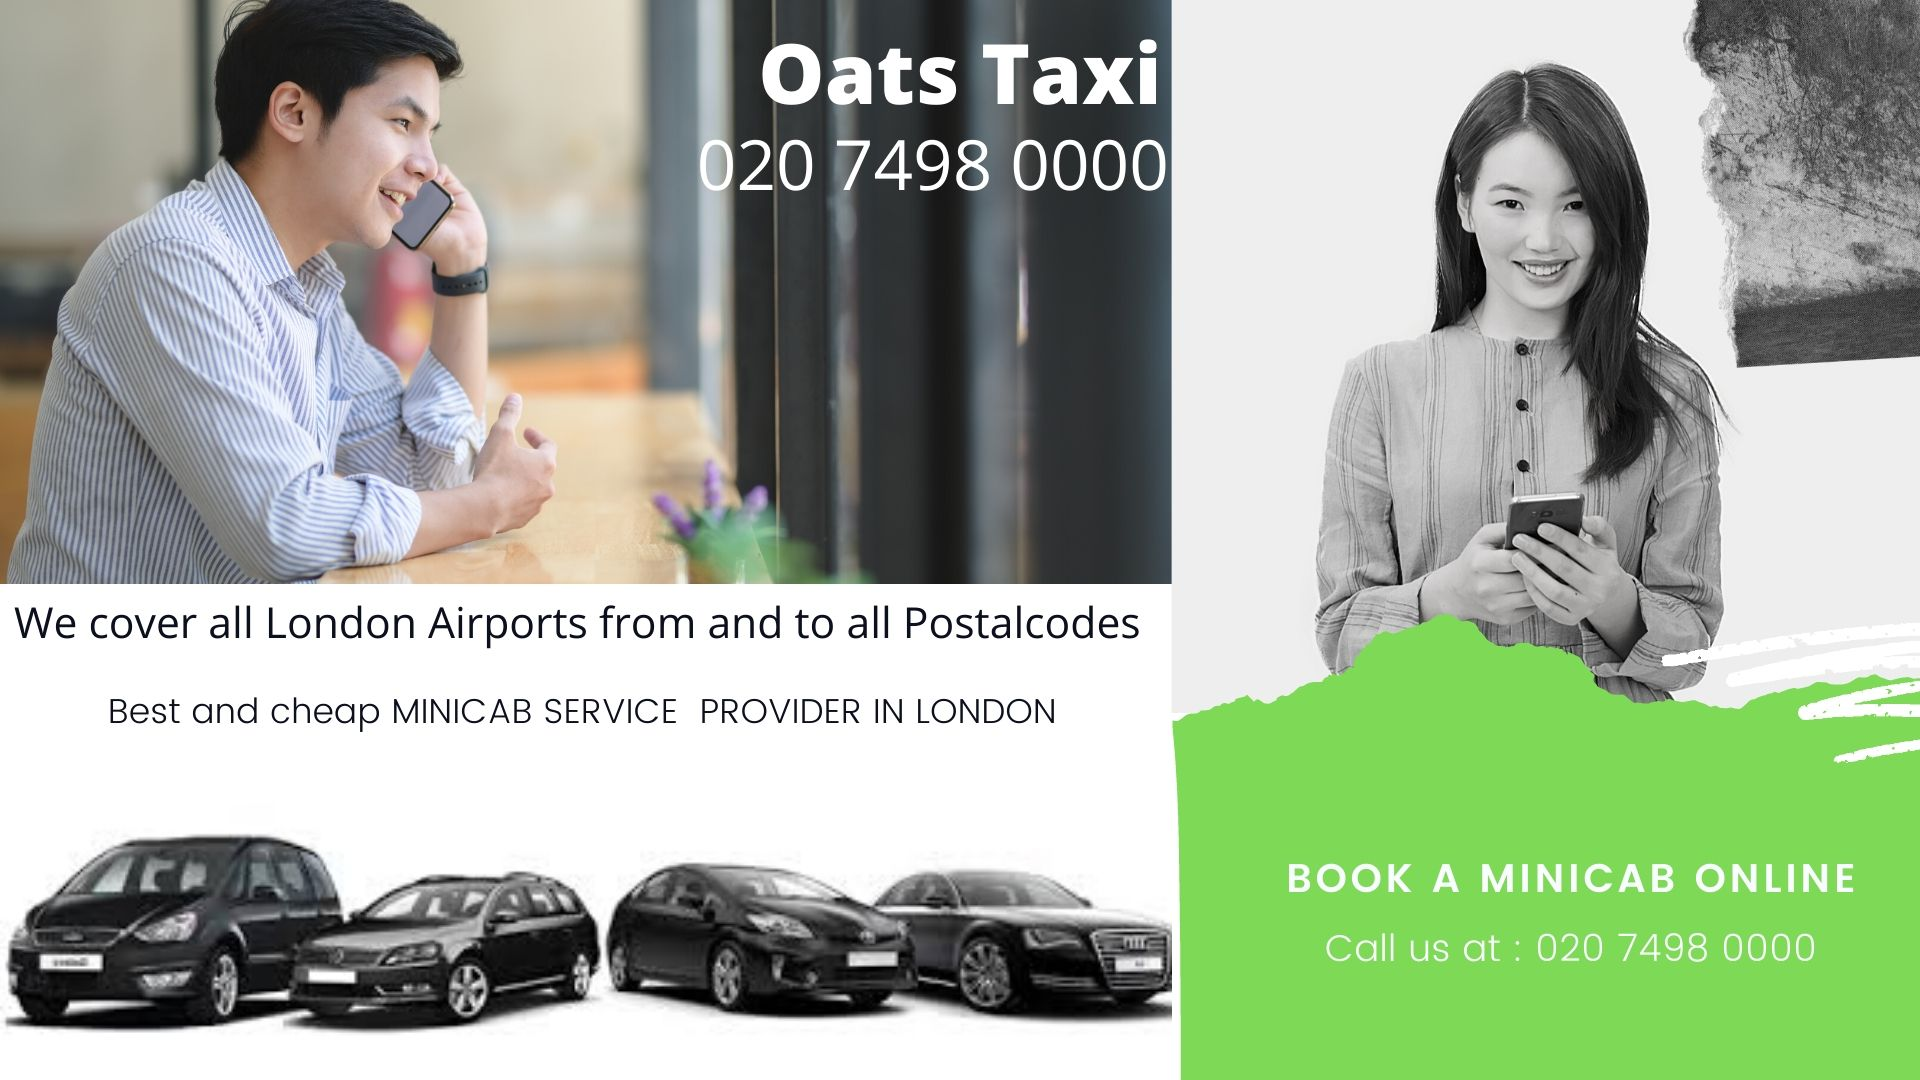 Minicab Office Near HOWIE STREET, Battersea SW11, Minicab From Battersea SW11 To Gatwick Airport